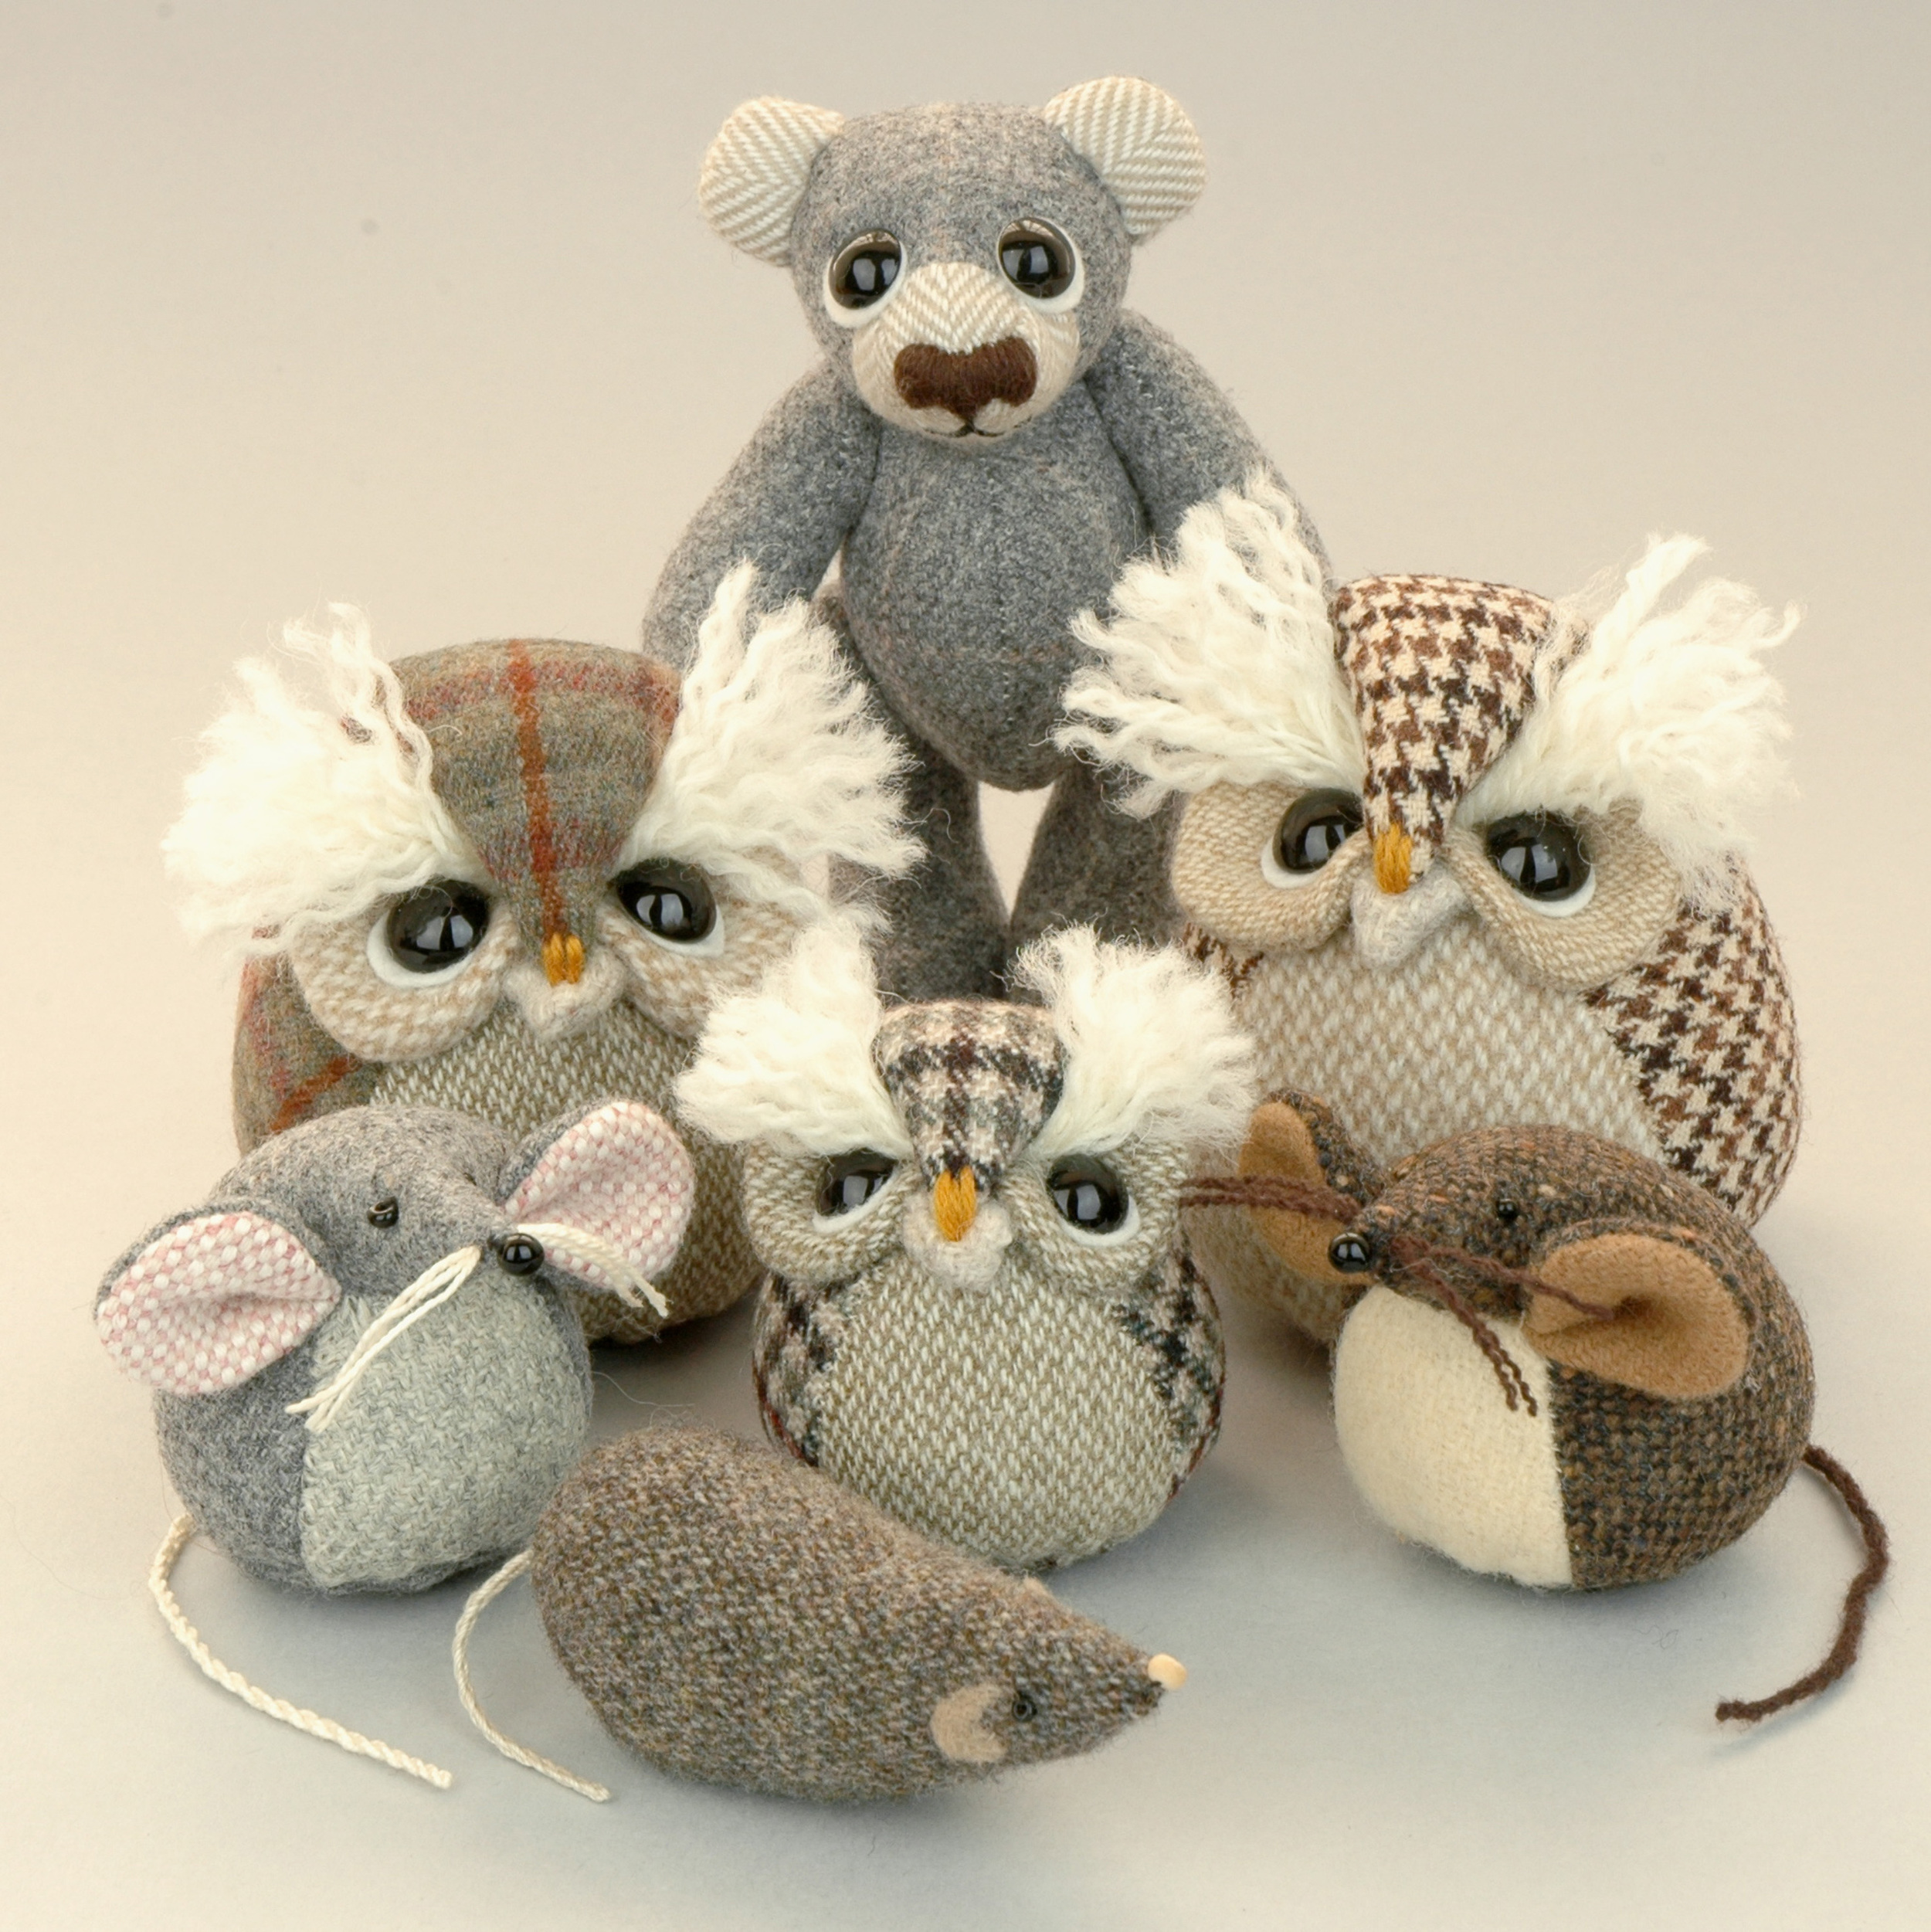 Handmade woodland friends collection.